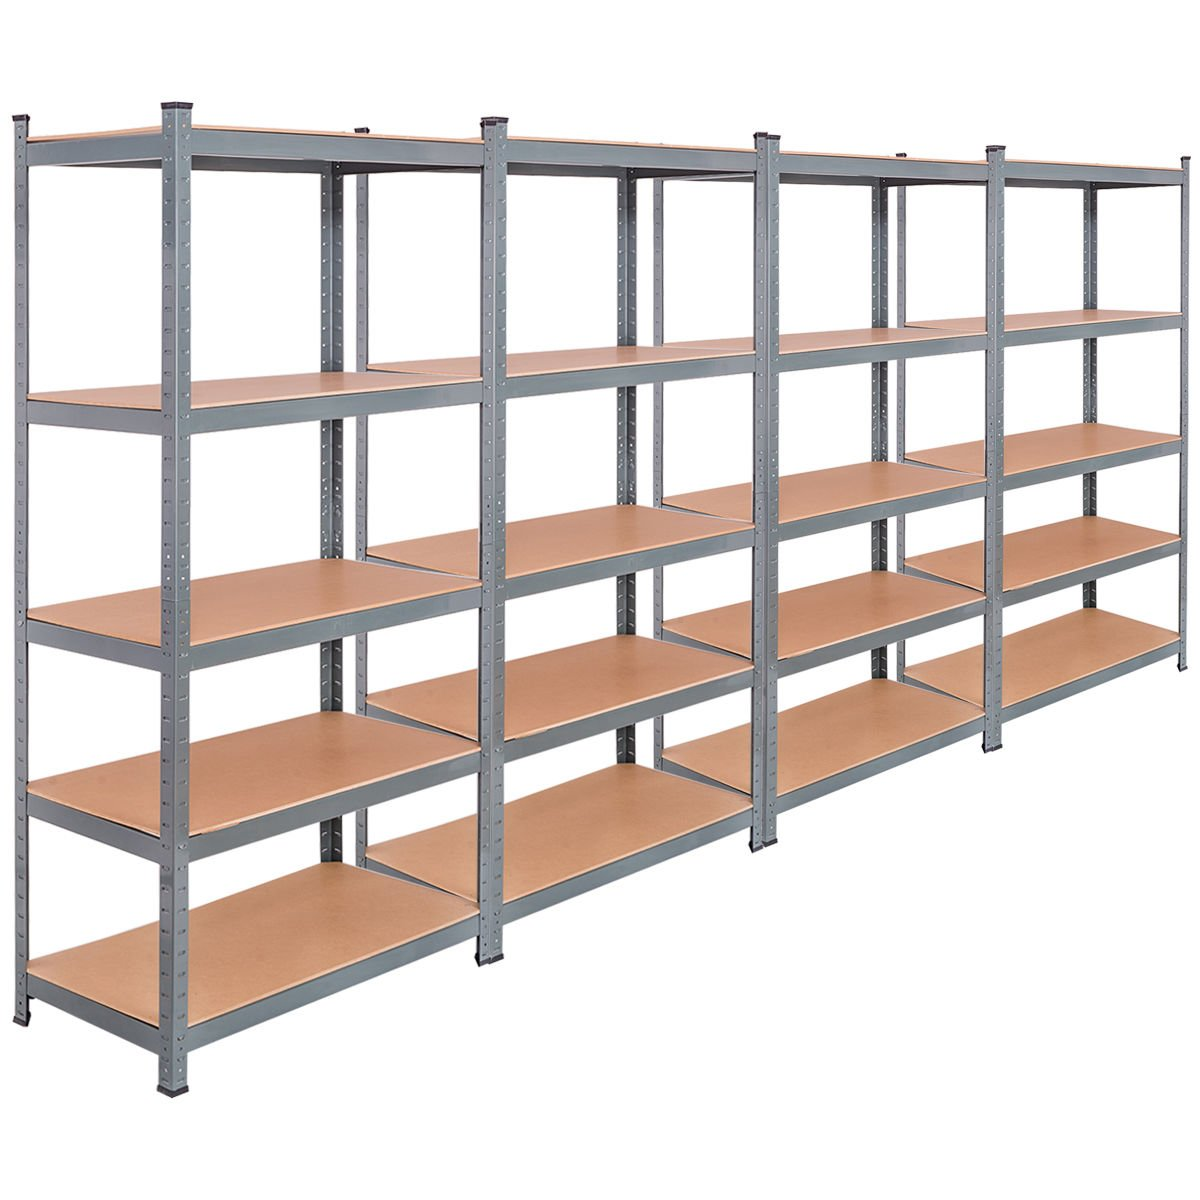 TANGKULA 5-Tier Storage Shelves Space-Saving Storage Rack Heavy Duty Steel Frame Organizer High Weight Capacity Multi-Use Shelving Unit for Home Office Dormitory Garage with Adjustable Shelves (4 PCS) by Tangkula